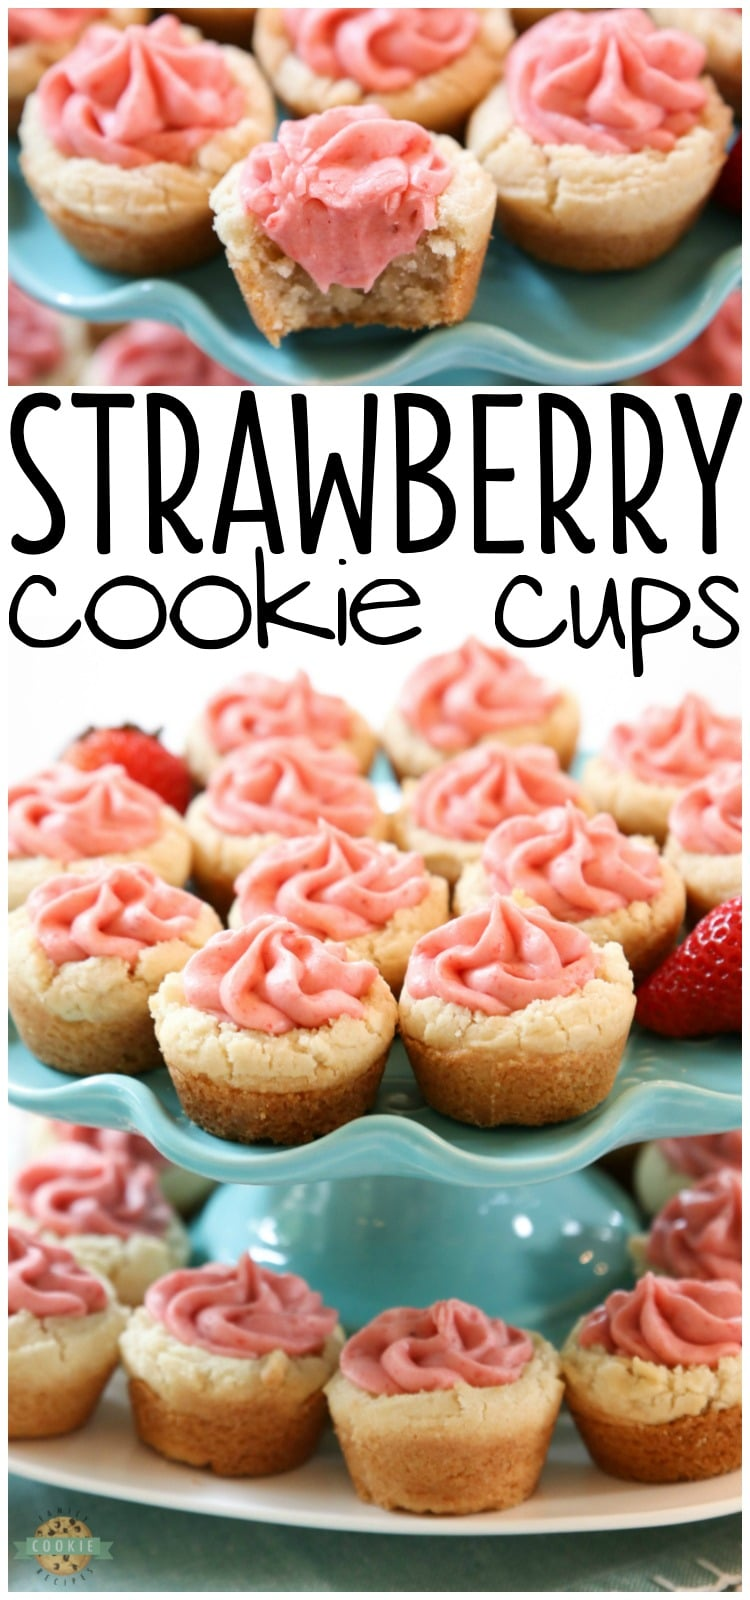 Strawberry Cookie Cups are bite-sized treats made with the best buttercream strawberry frosting ever. Made with fresh strawberries, there just aren't better strawberry cookies than these! #strawberry #strawberrycookies #cookiecups #strawberryfrosting #buttercreamfrosting #freshstrawberries #strawberrybuttercreamfrosting #strawberrycookiecups #recipefrom Butter With a Side of Bread